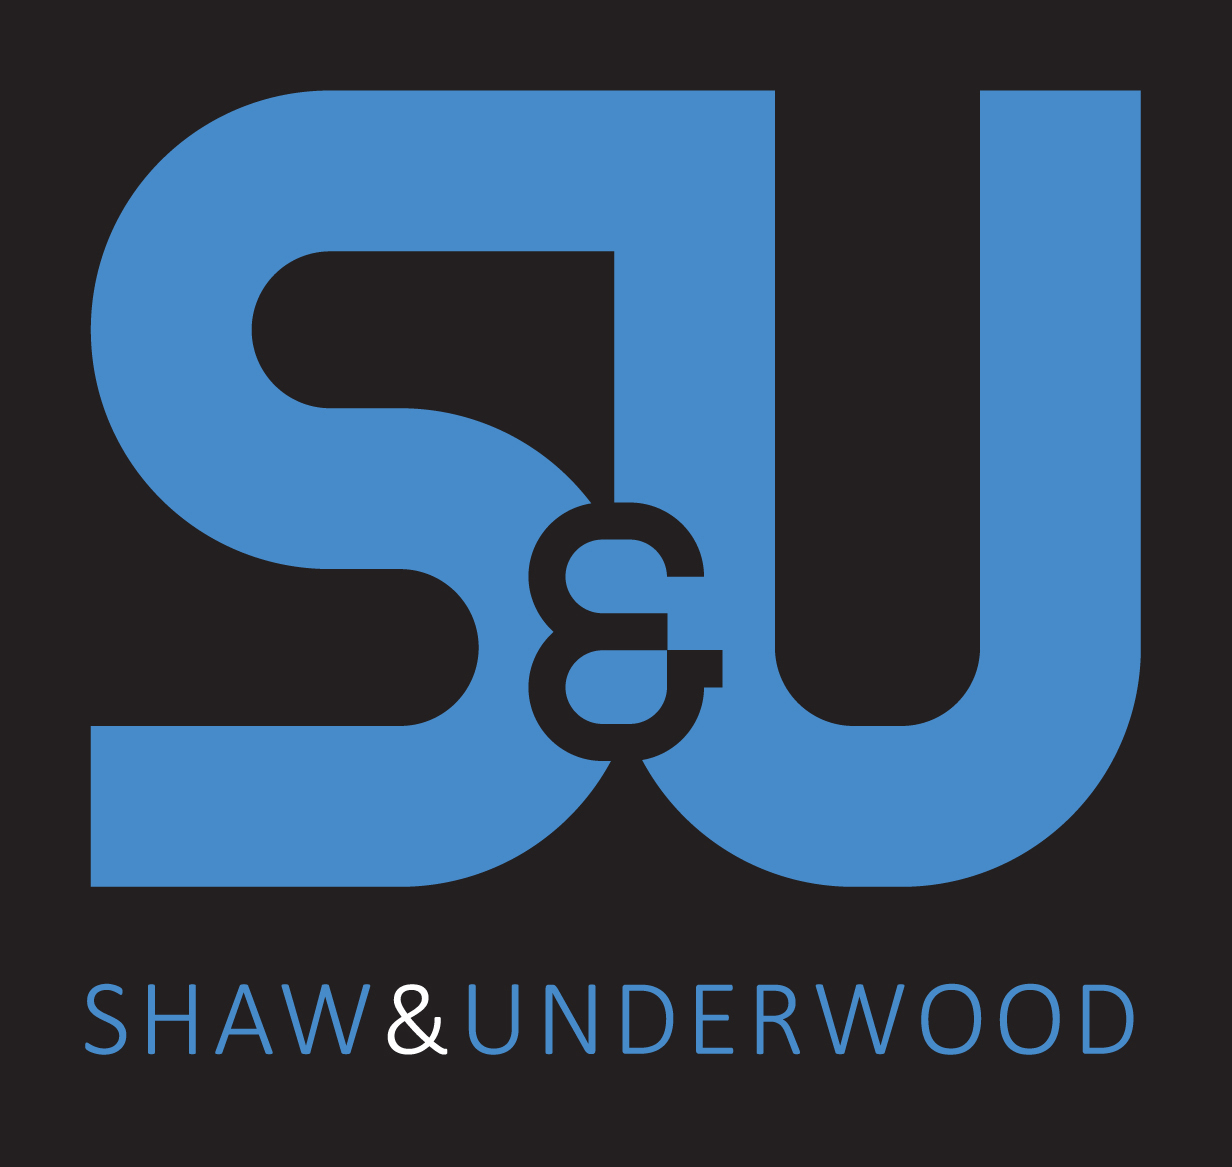 Shaw & Underwood